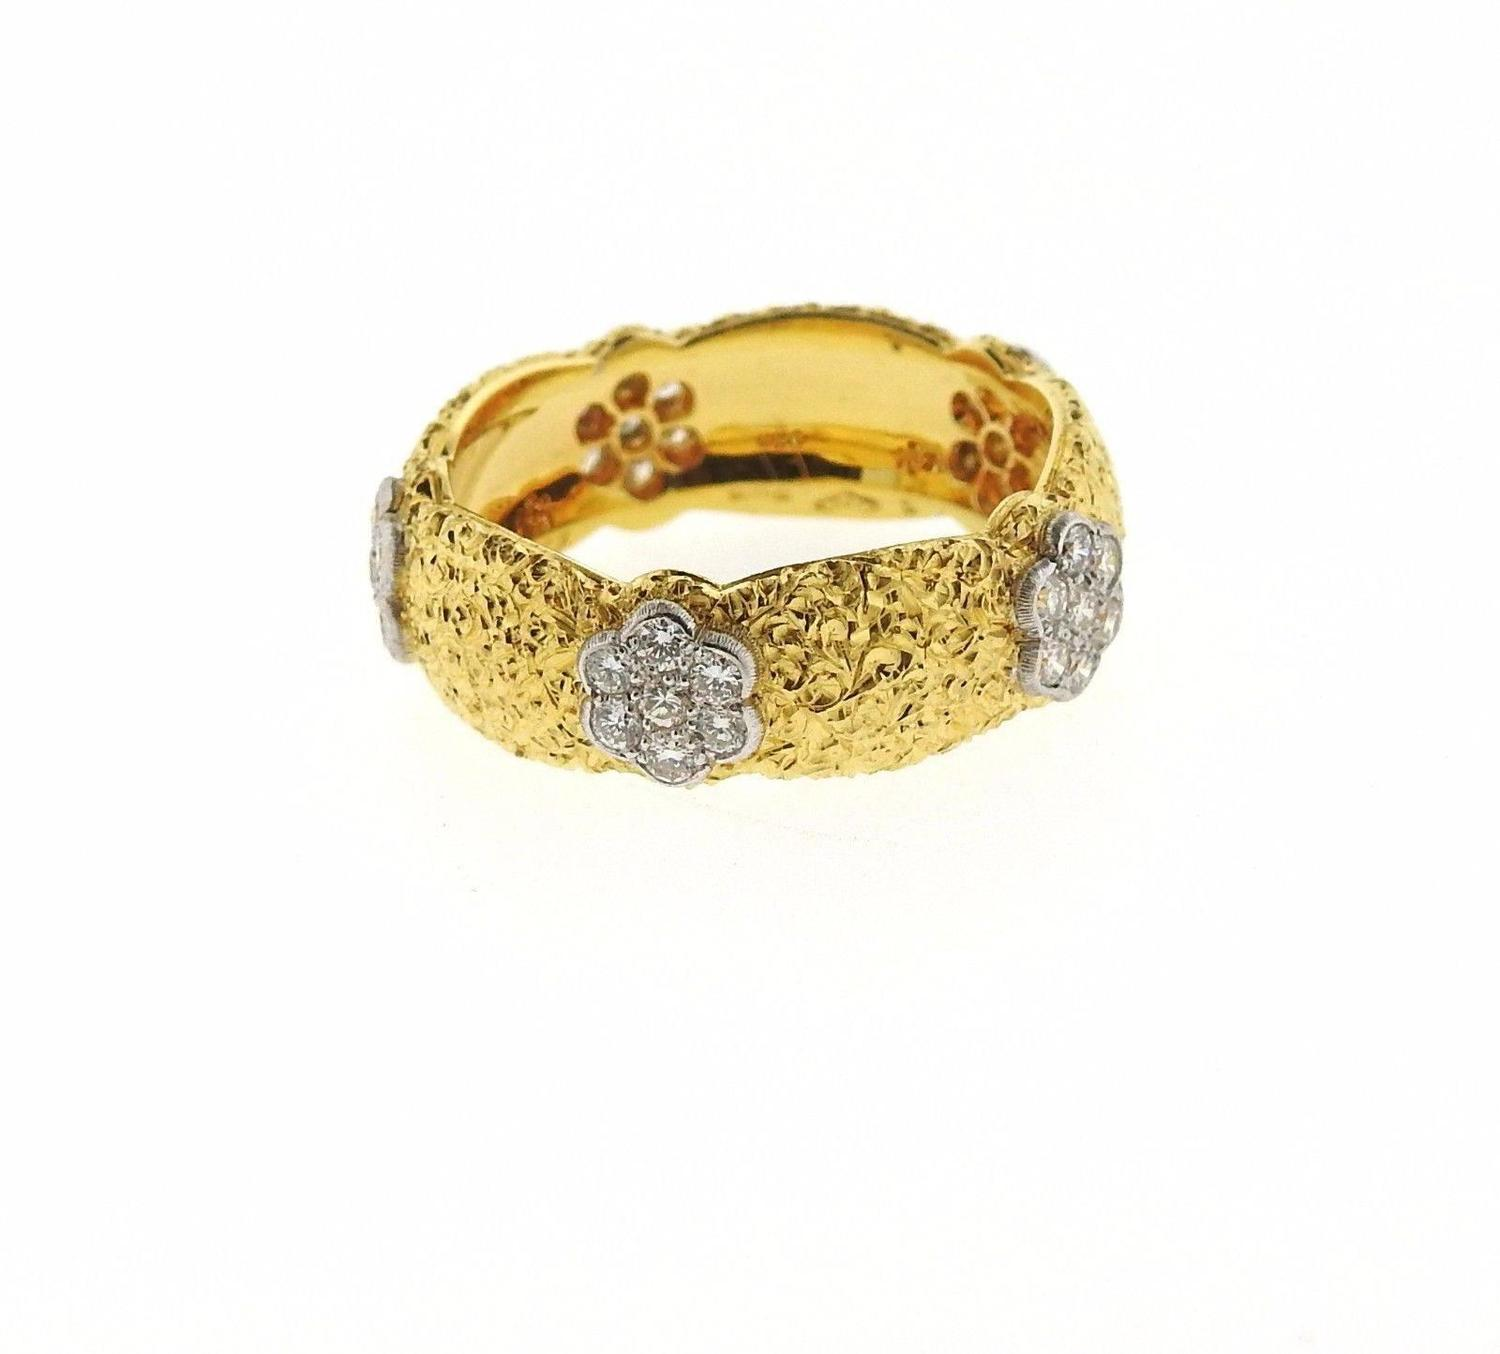 Buccellati Eternelle Gold Diamond Wedding Band Ring For